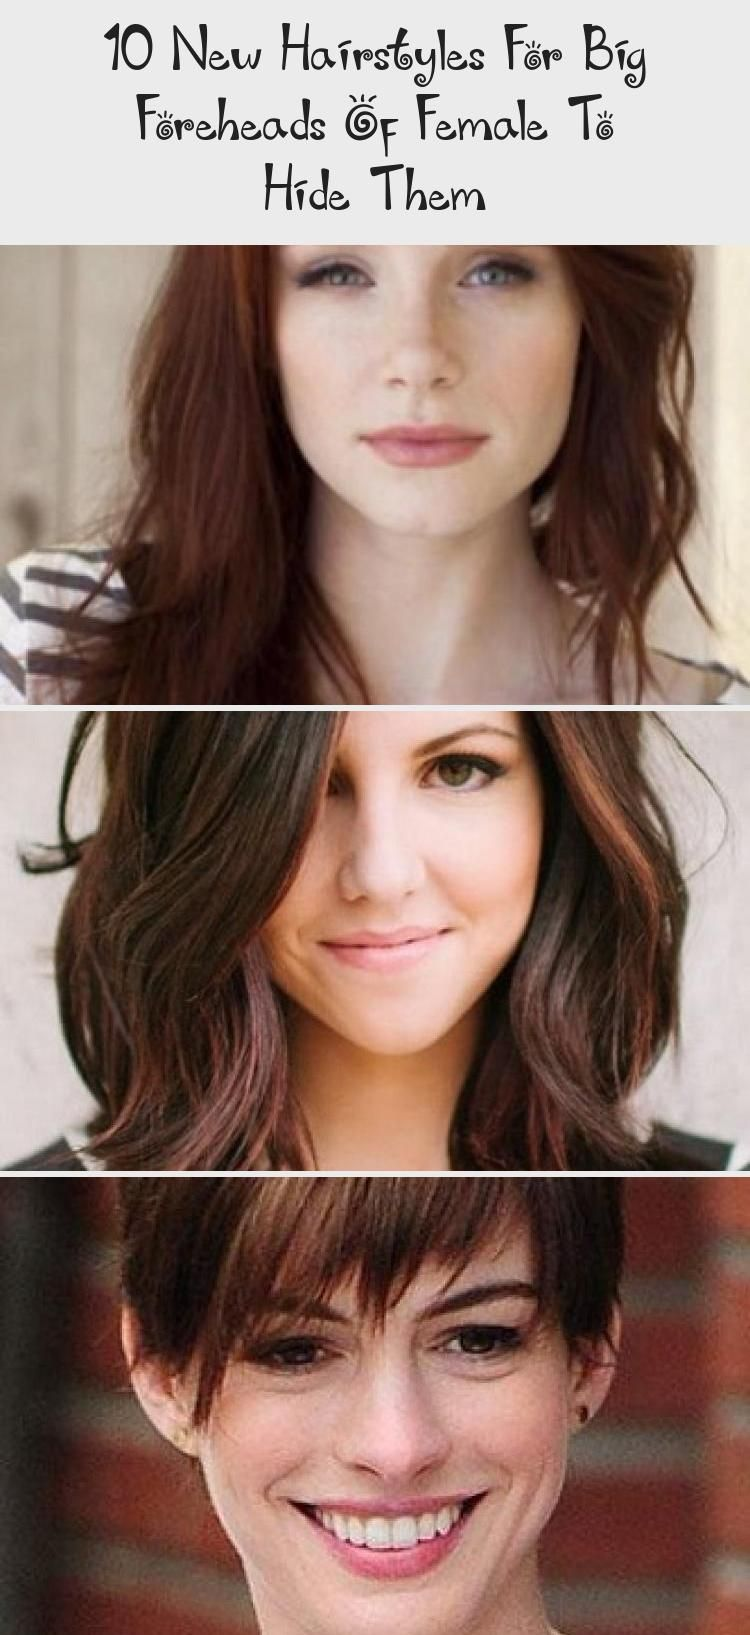 10 new hairstyles for big foreheads of female to hide them